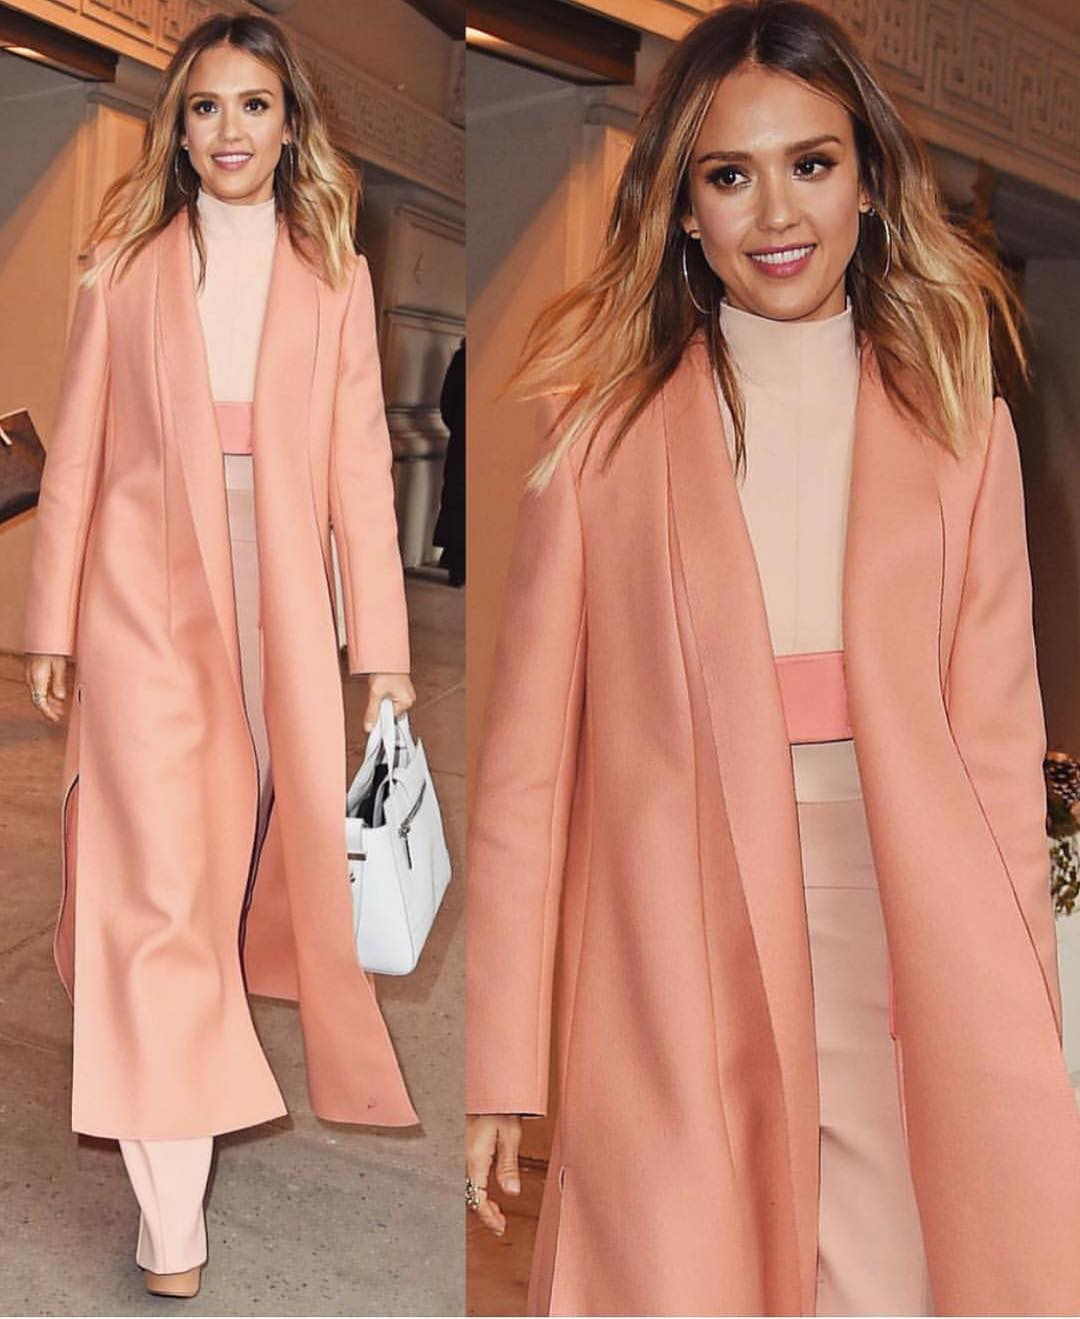 Blush Maxi Coat For Monochrome Outfit: Fall Essentials 2020